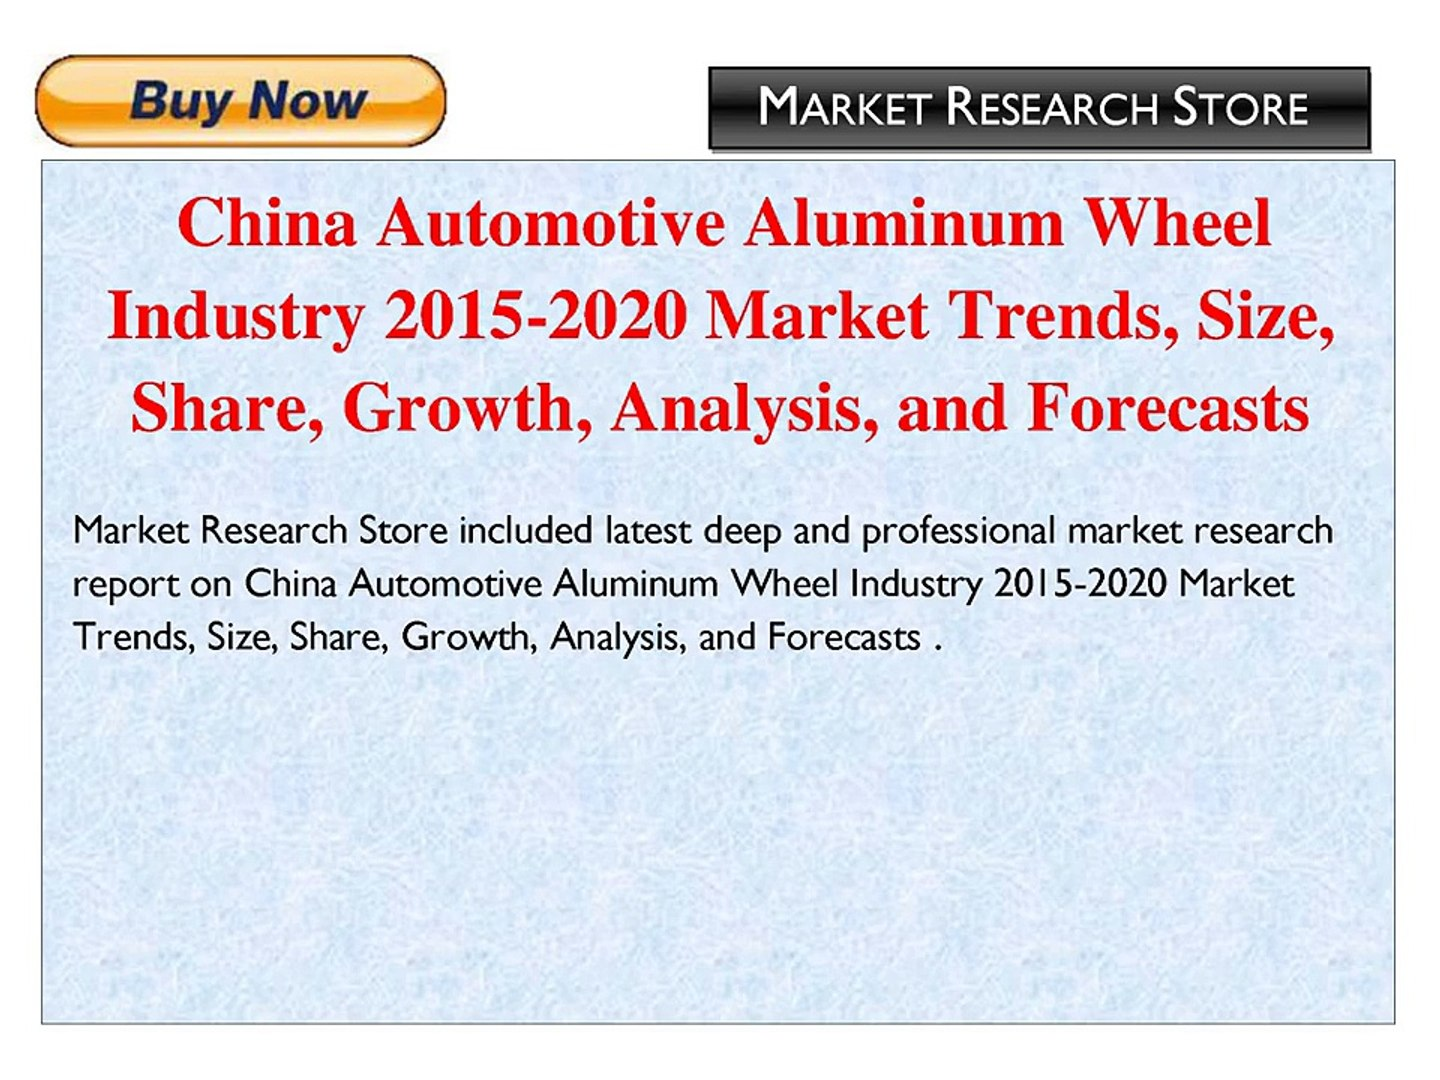 Automotive Trends 2020.China Automotive Aluminum Wheel Industry 2015 2020 Market Trends Size Share Growth Analysis And Forecasts